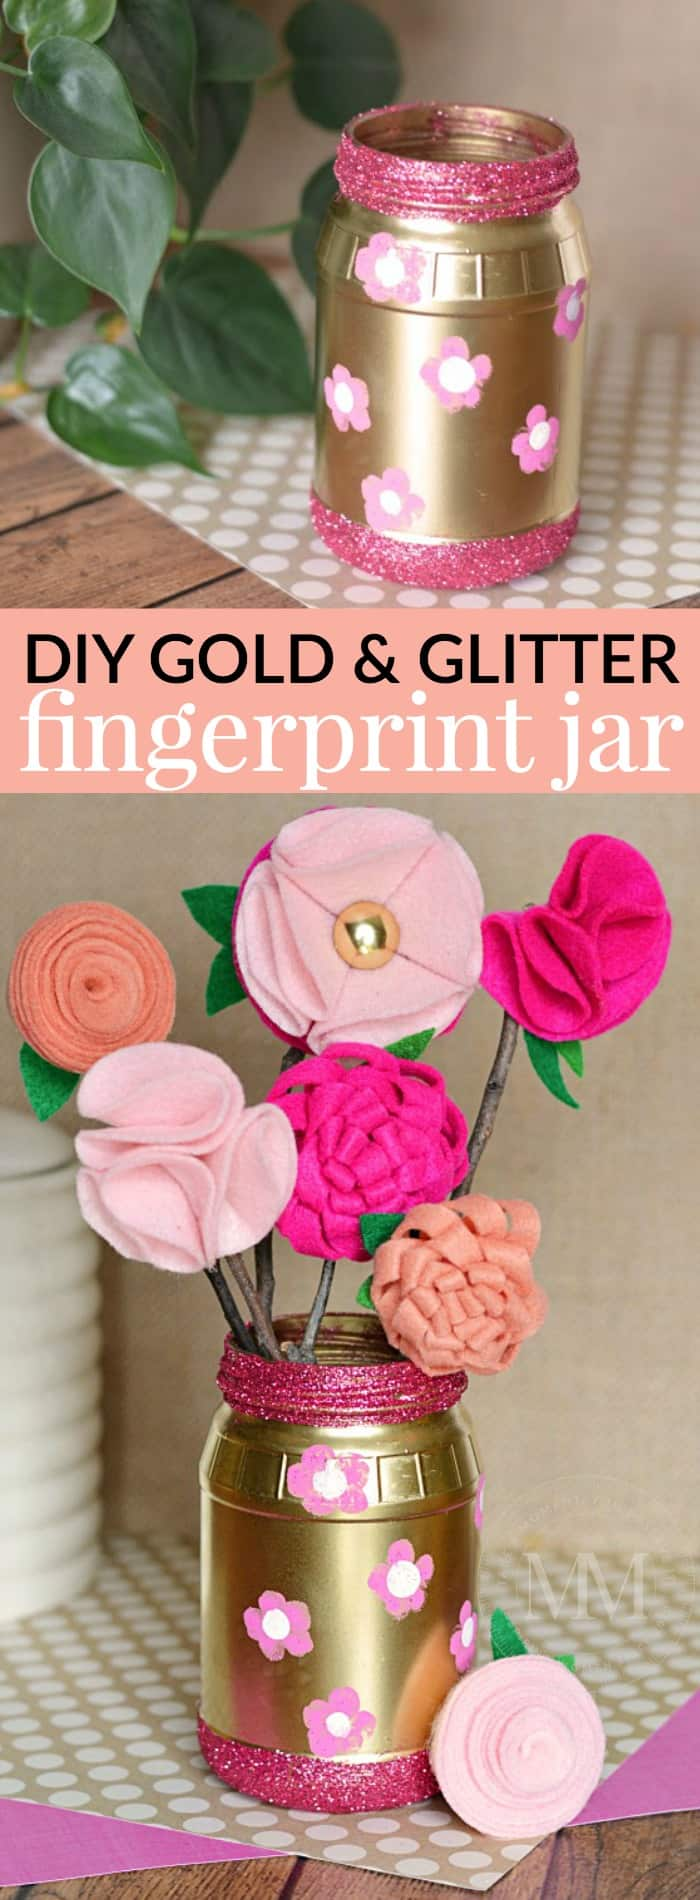 Make your own gold and glitter jar with fingerprint flowers - perfect to display some homemade felt flowers.